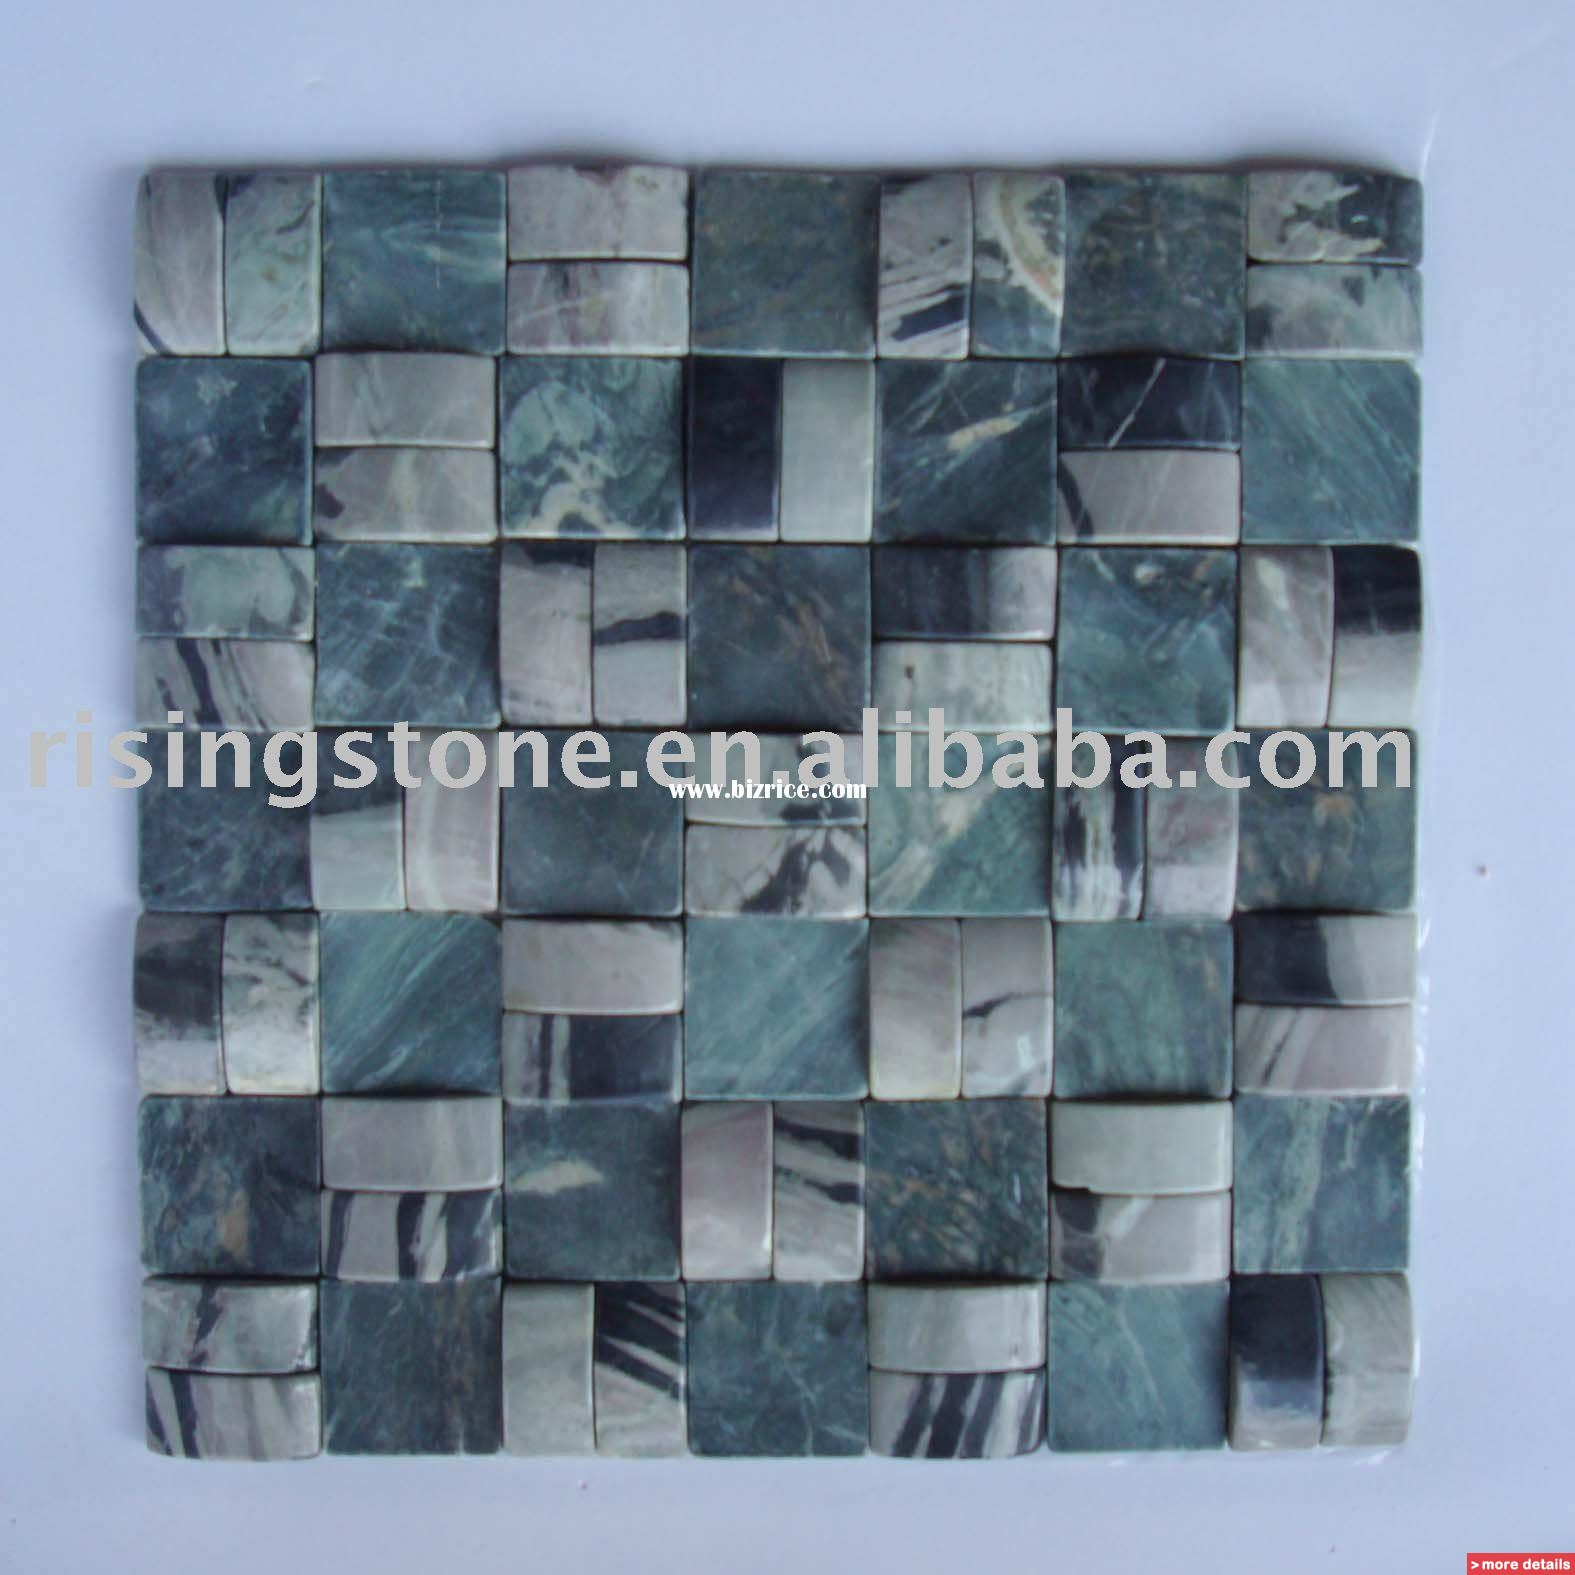 30 Pictures of mosaic bathroom tile patterns